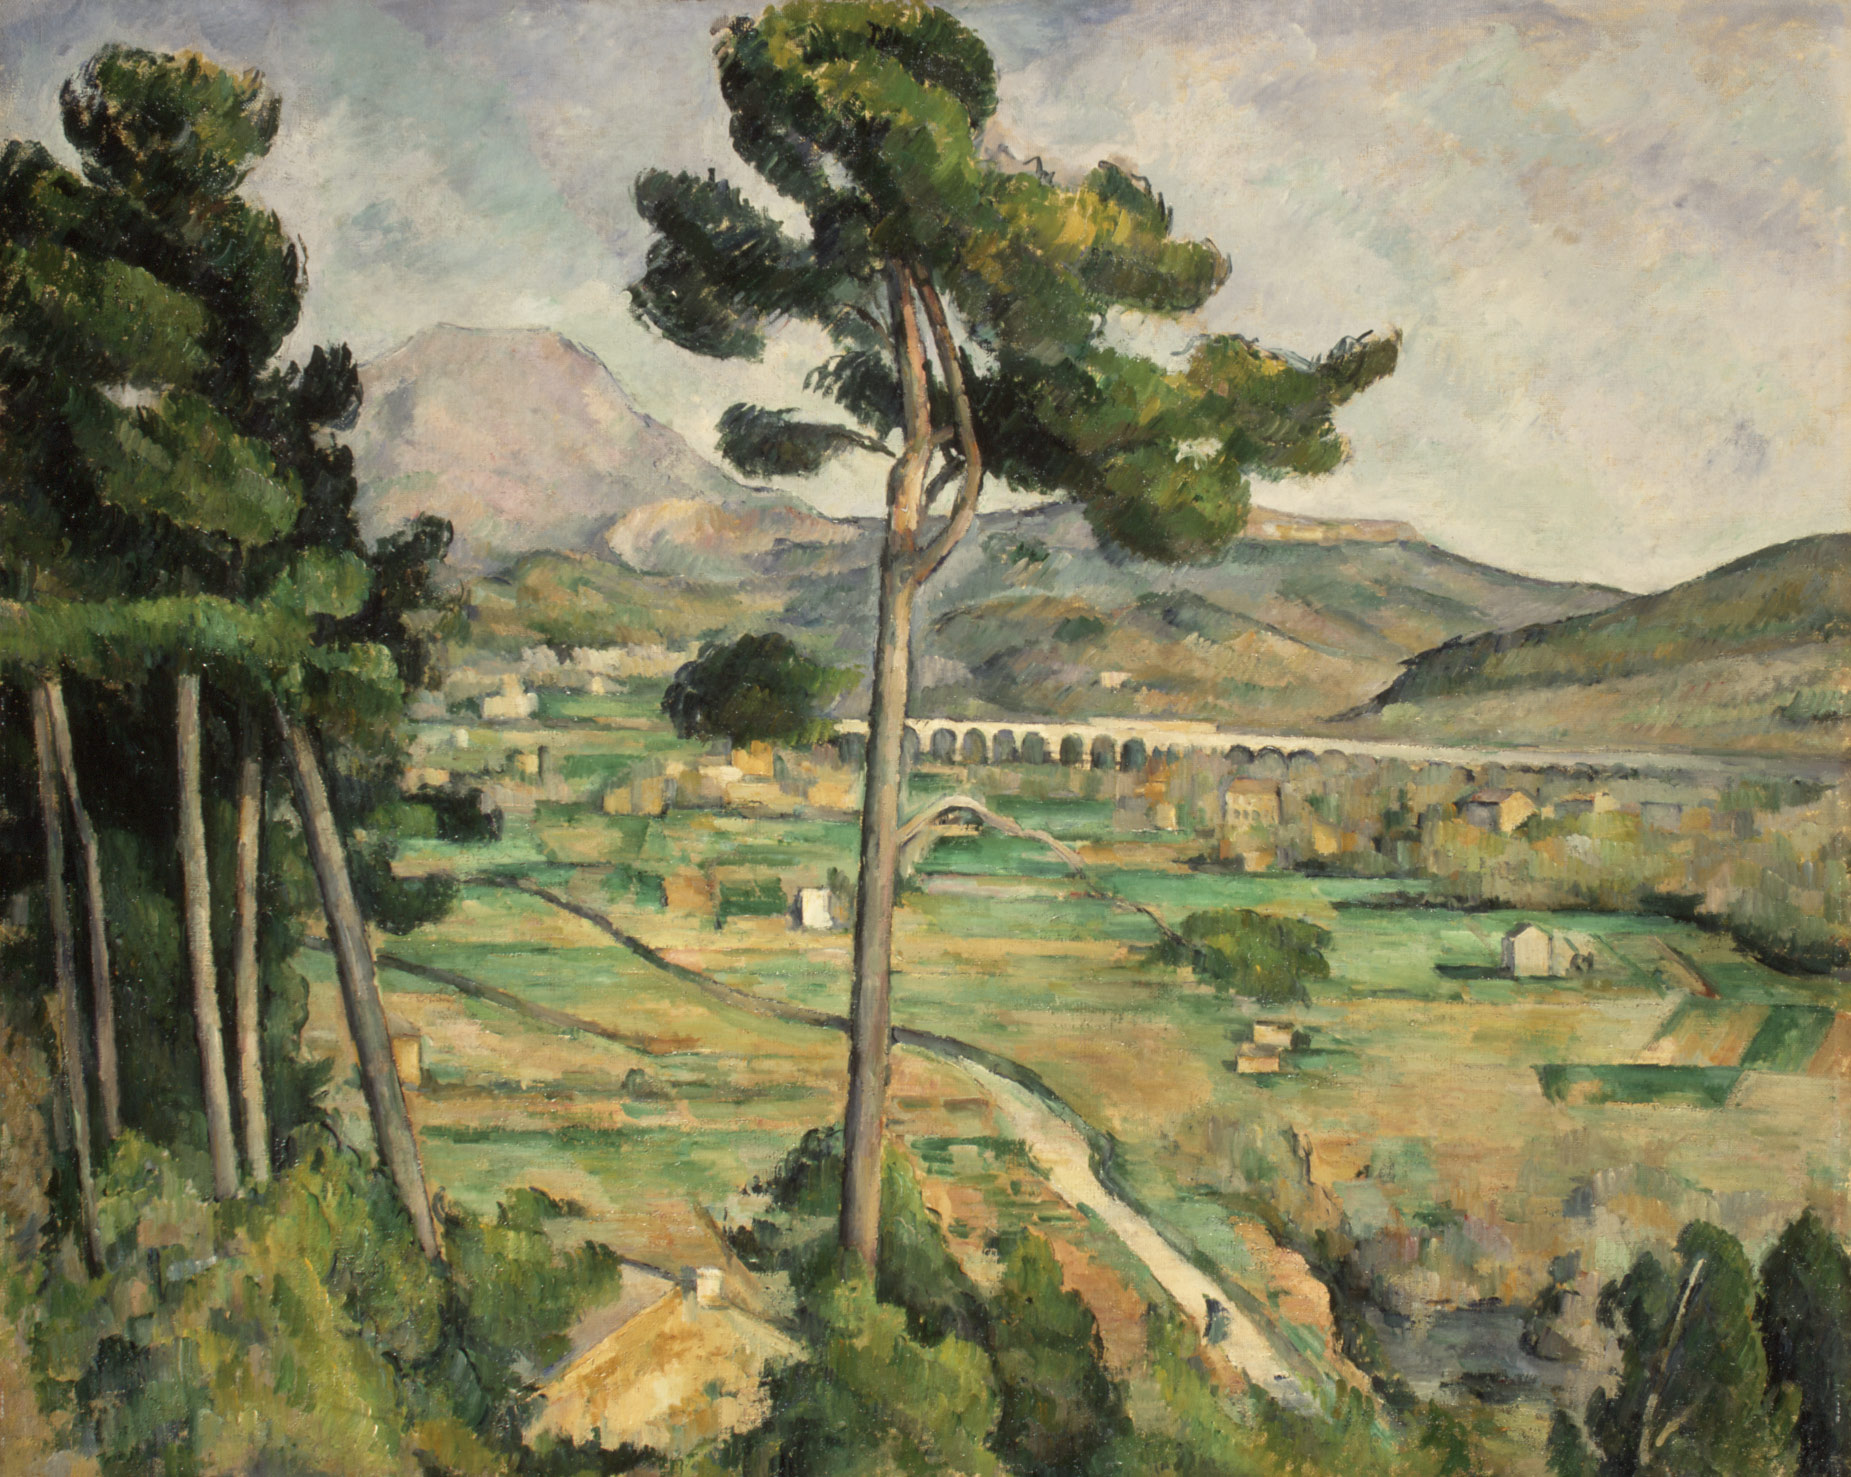 Paul Cezanne, Mont Sainte-Victoire and the Viaduct of the Arc River Valley, 1885-1887, oil on canvas, Metropolitan Museum of Art, New York